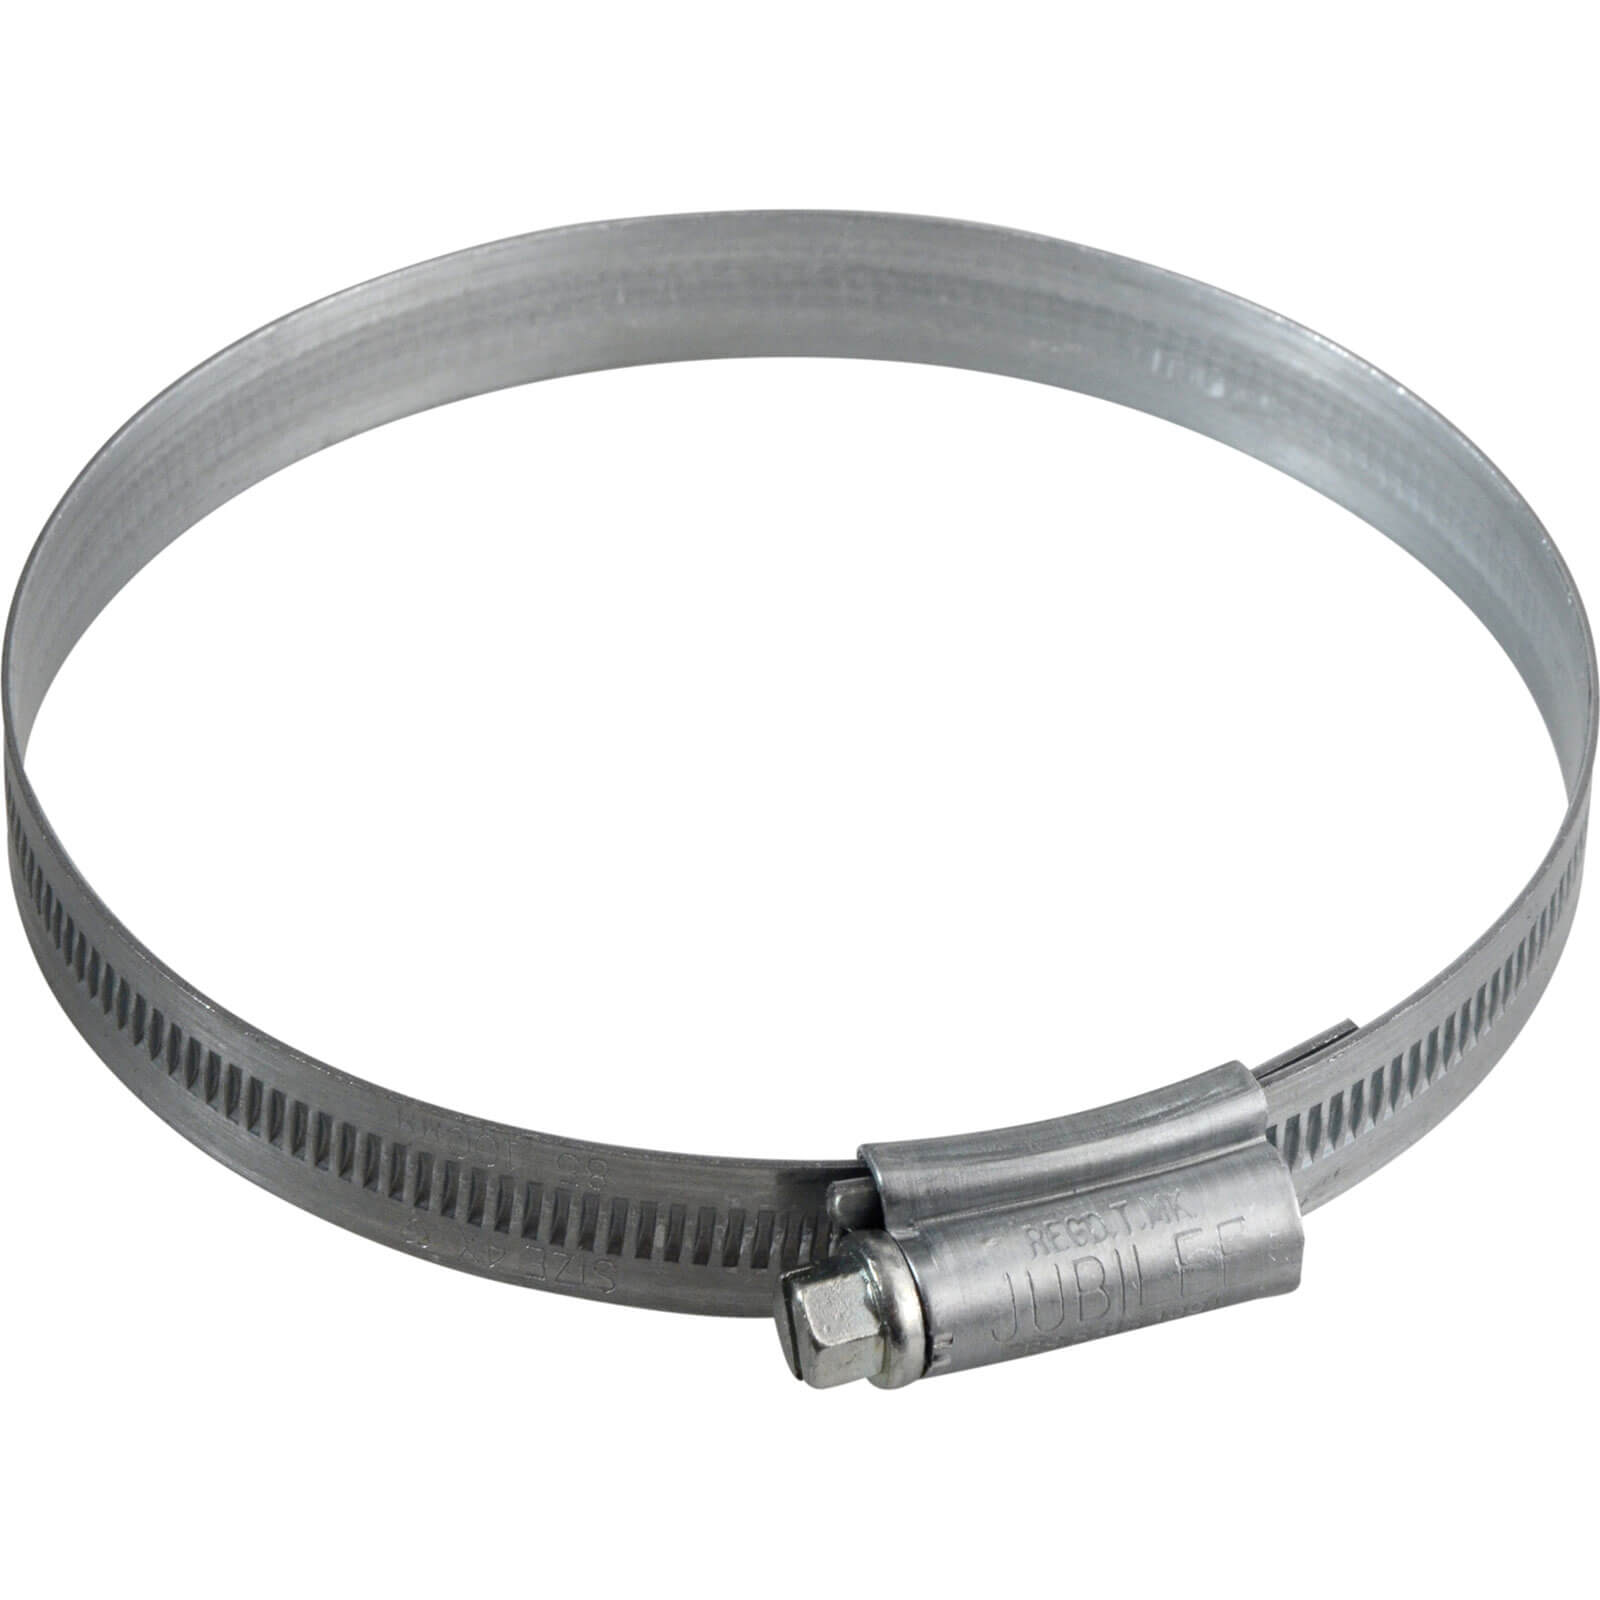 Image of Jubilee Zinc Plated Hose Clip 85mm - 100mm Pack of 1